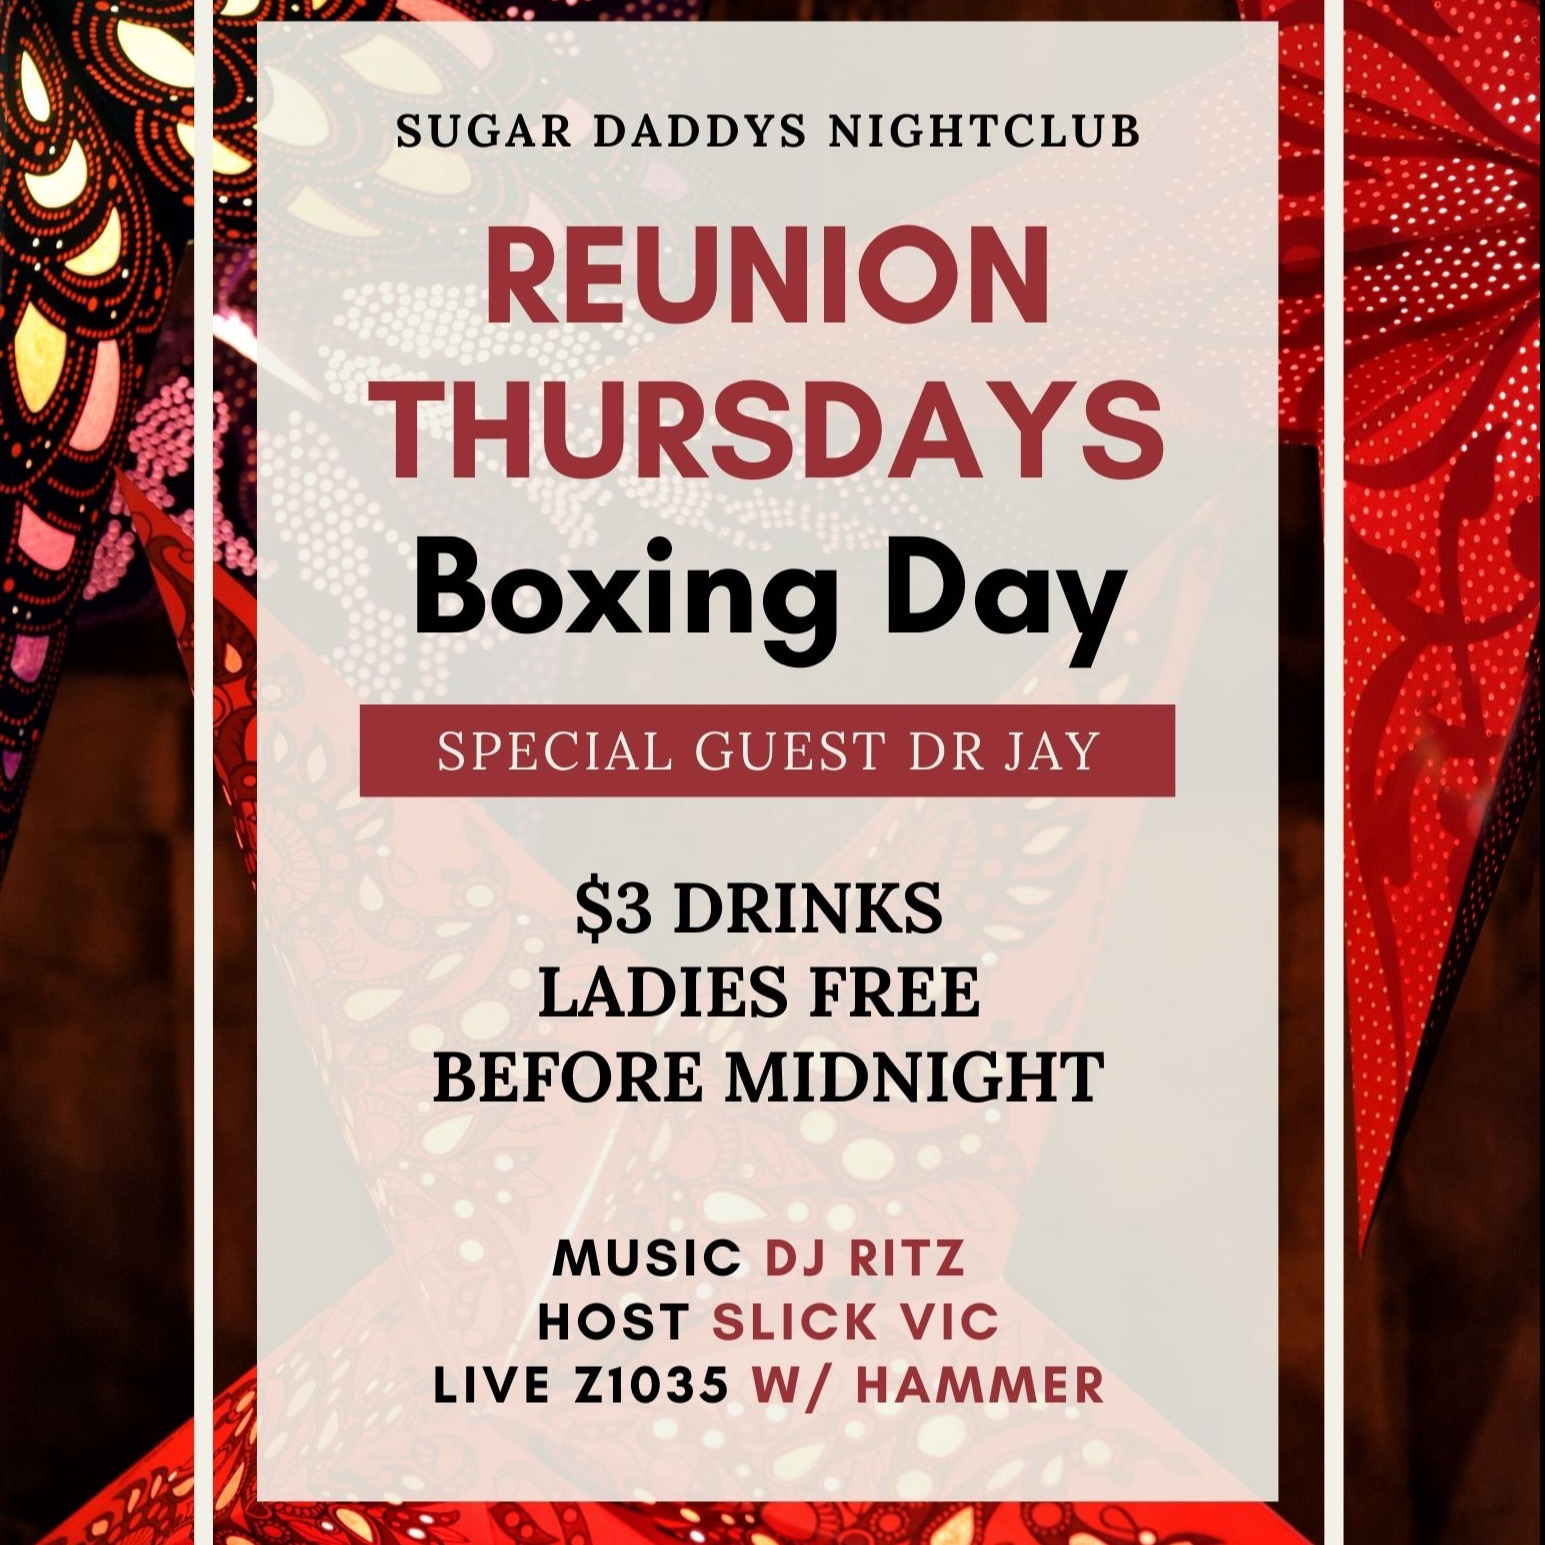 Boxing Day Sugar Daddys with Dr Jay / Ritz live Z1035 / $3 drinks